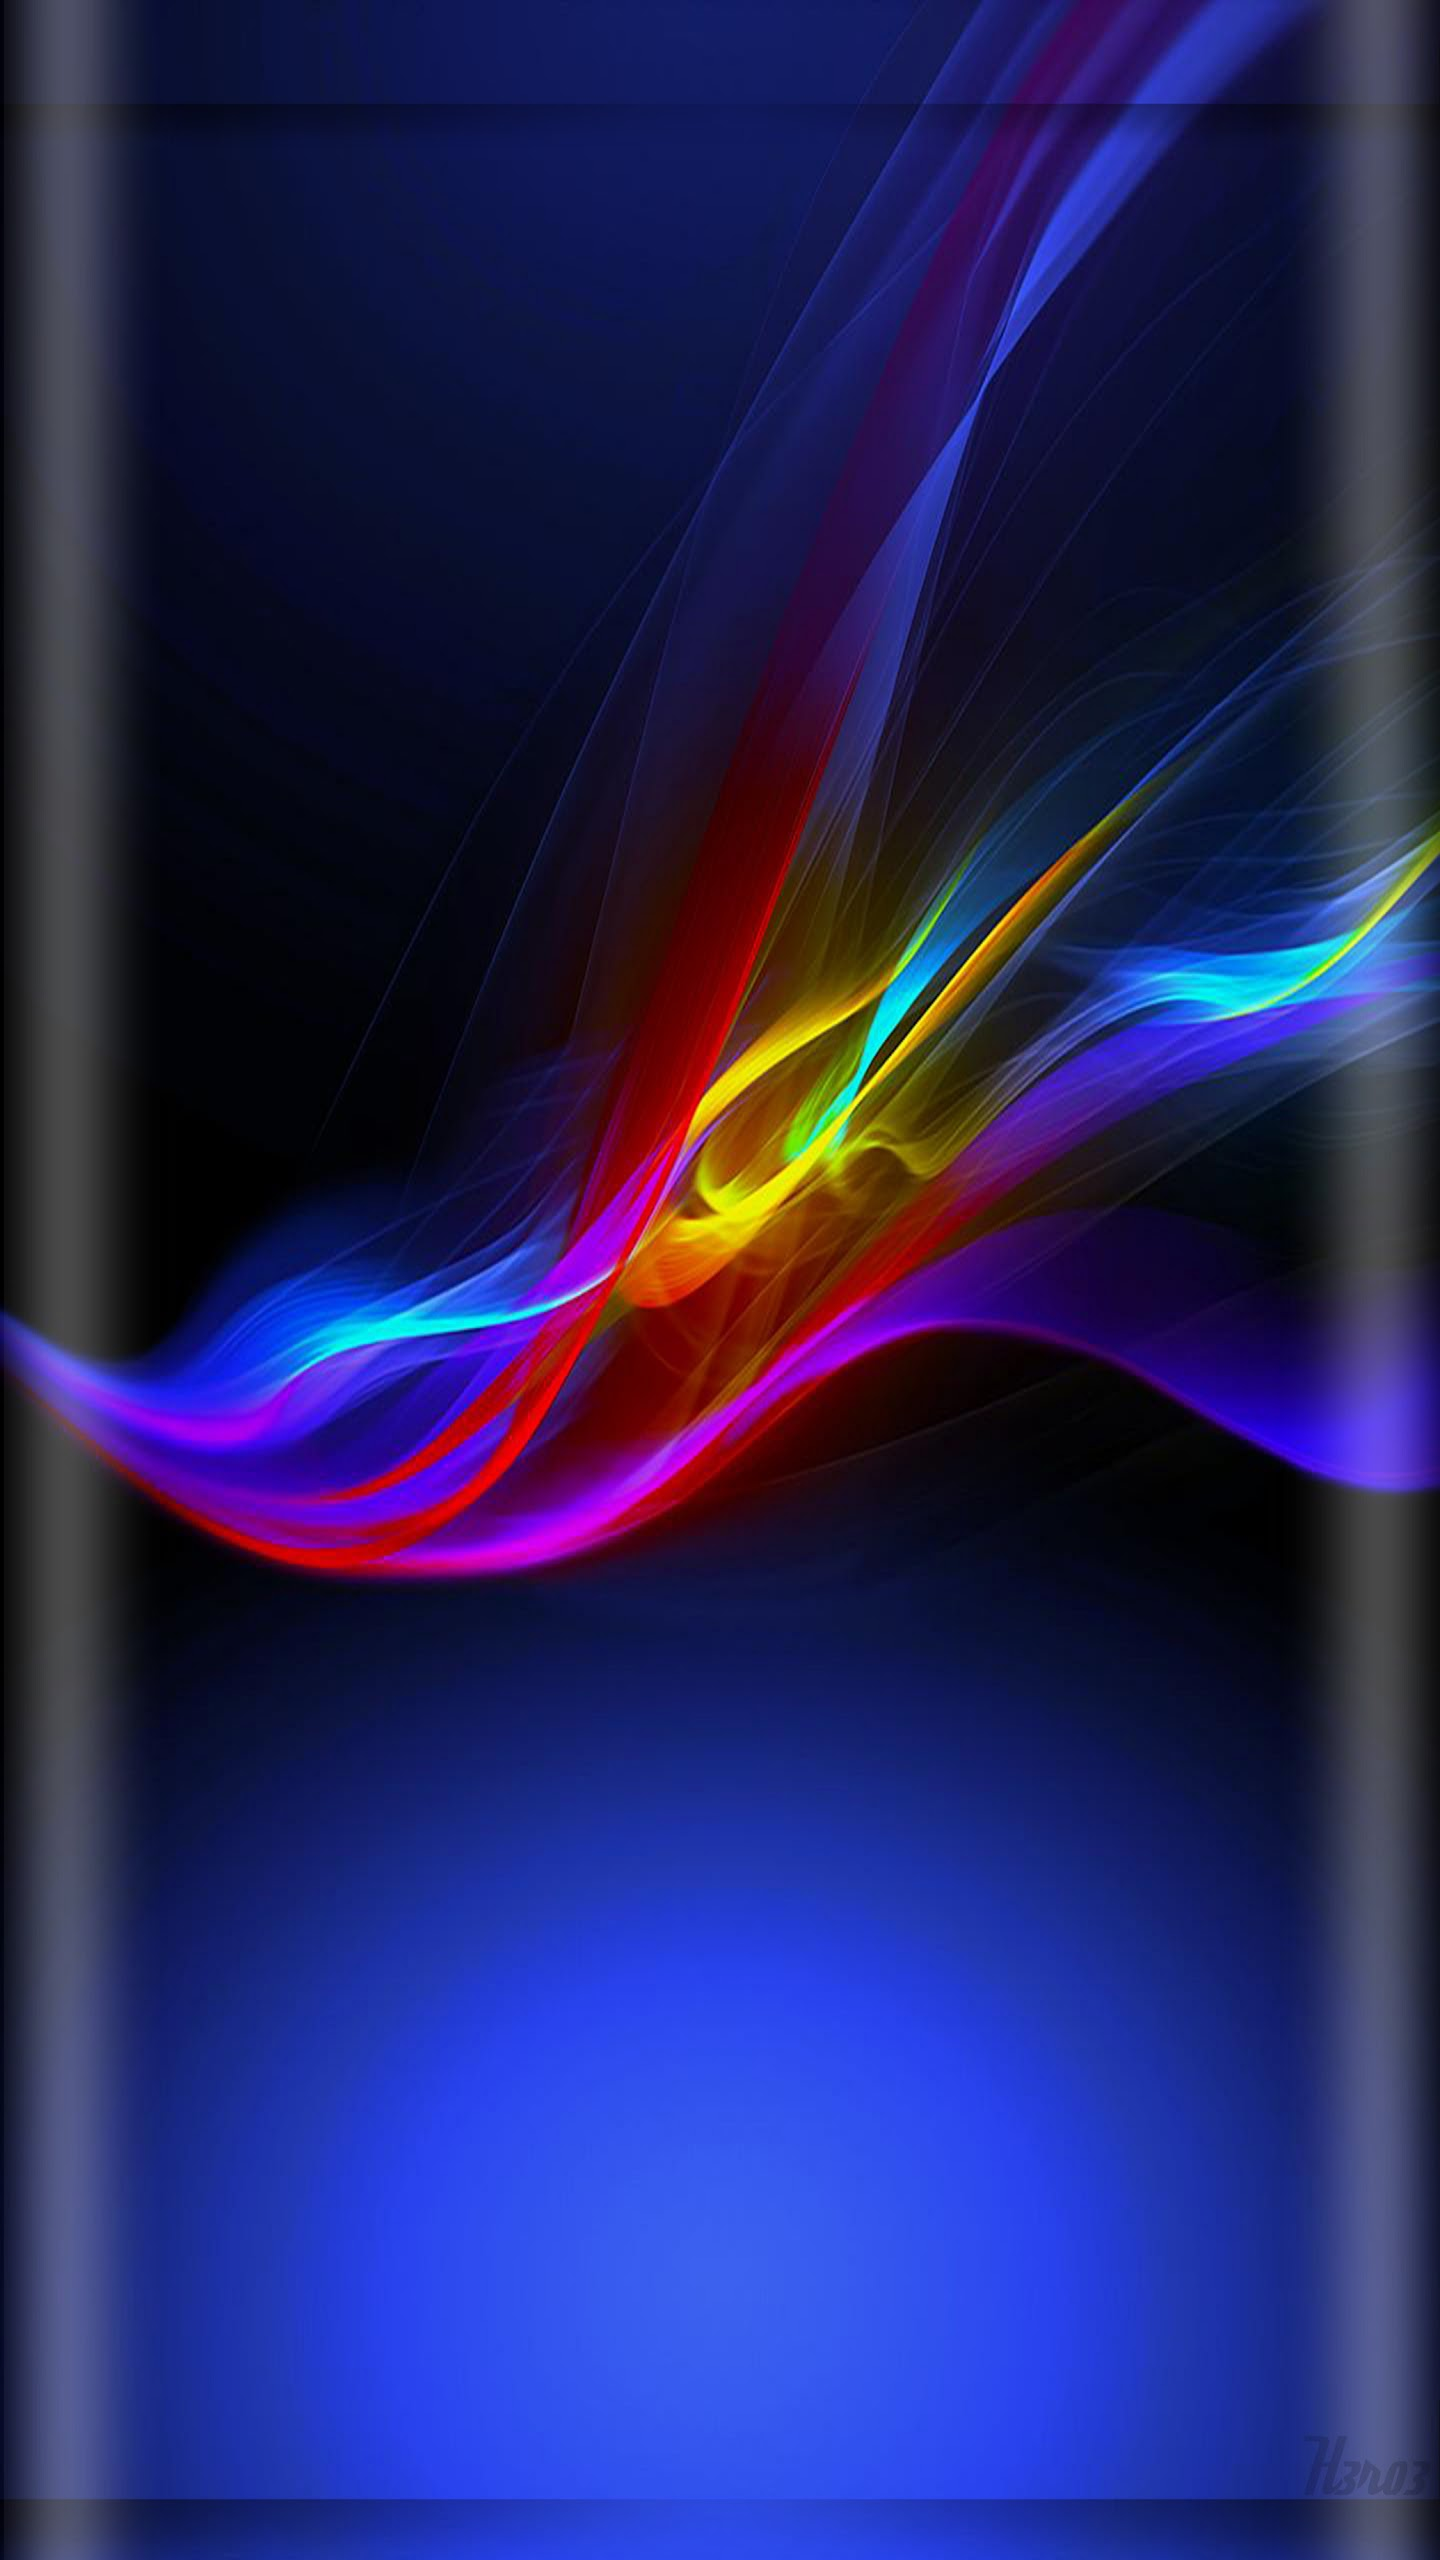 Unduh 81+ Wallpaper Hp Edge HD Terbaru